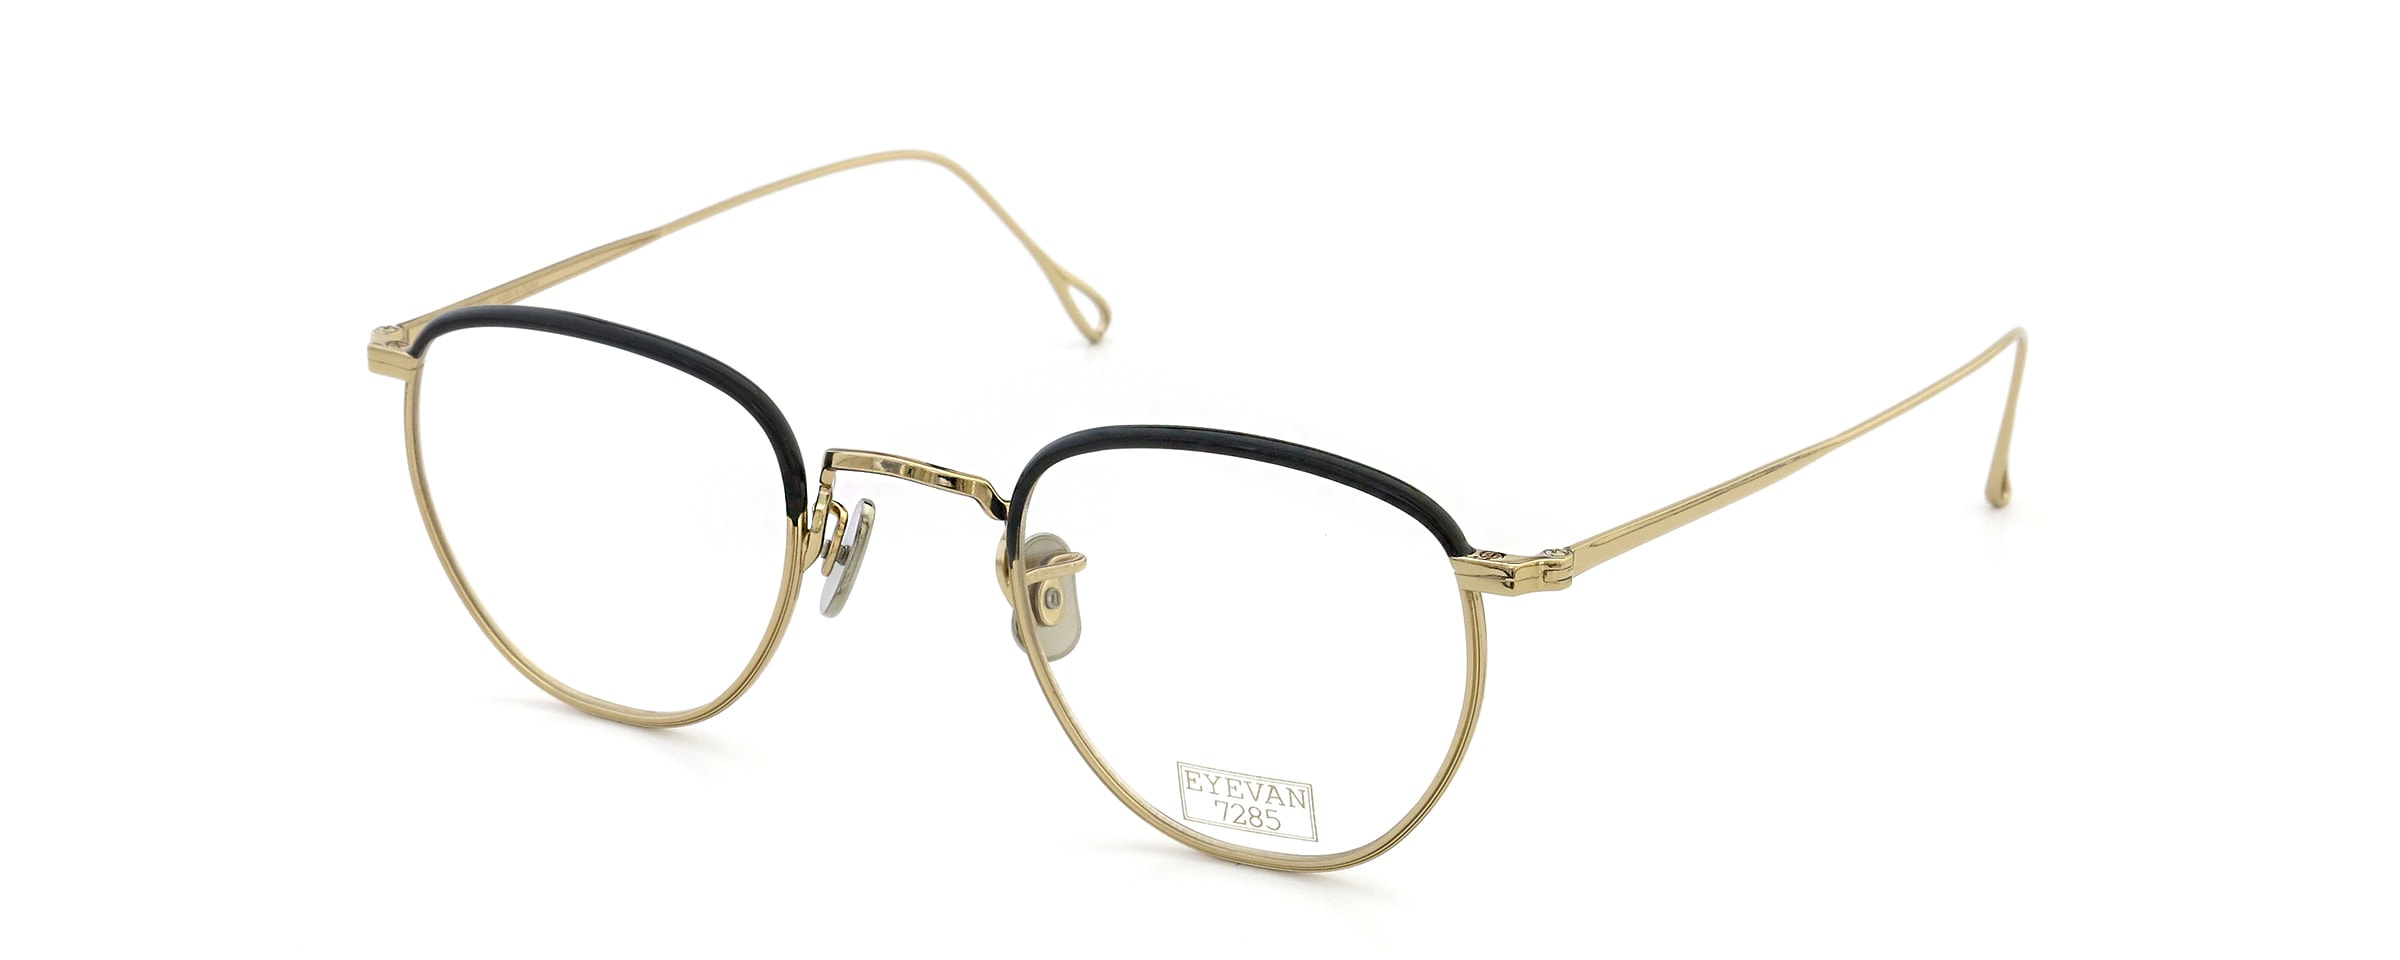 EYEVAN 7285 549 9007 BLACK/EYEVAN GOLD